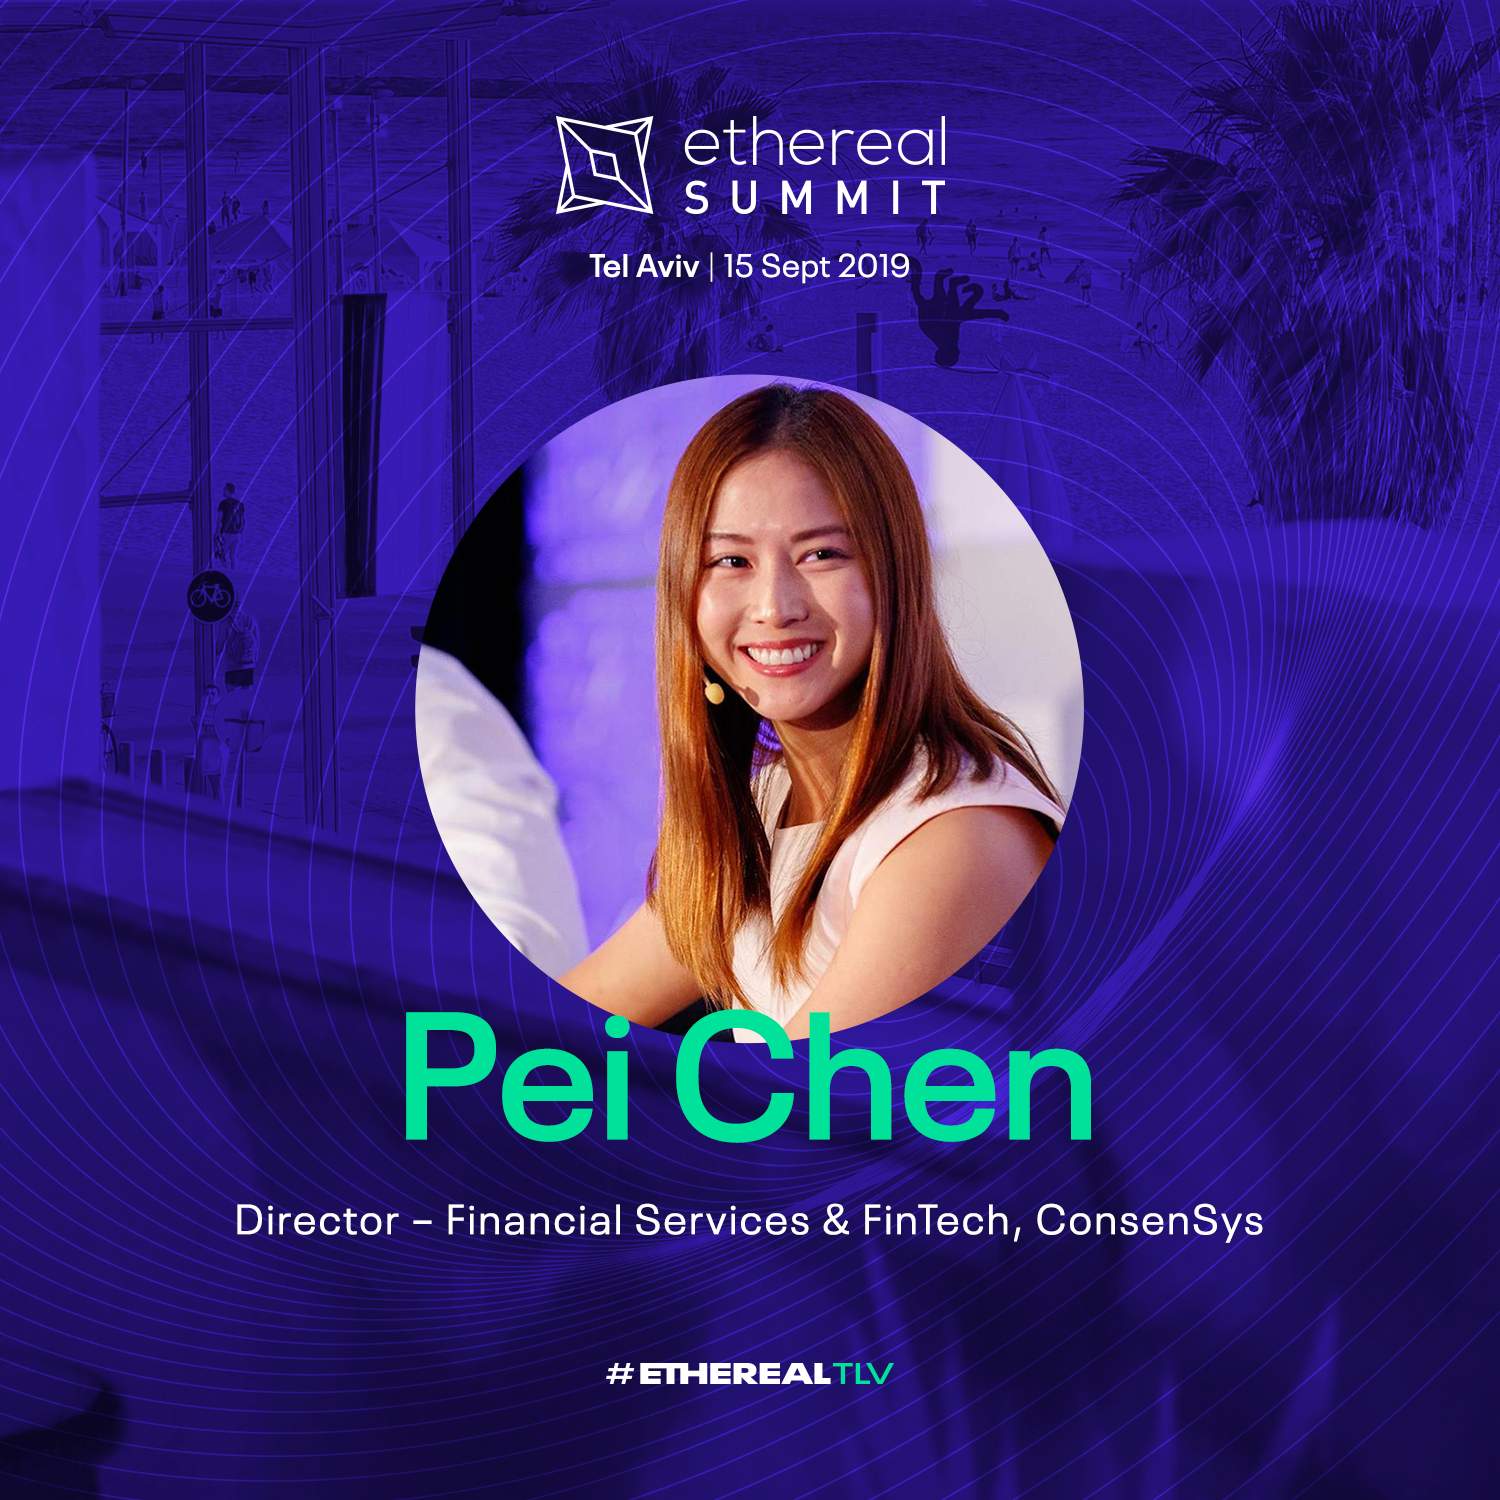 ethereal-tlv-2019-speaker-cards-square-pei-chen.png